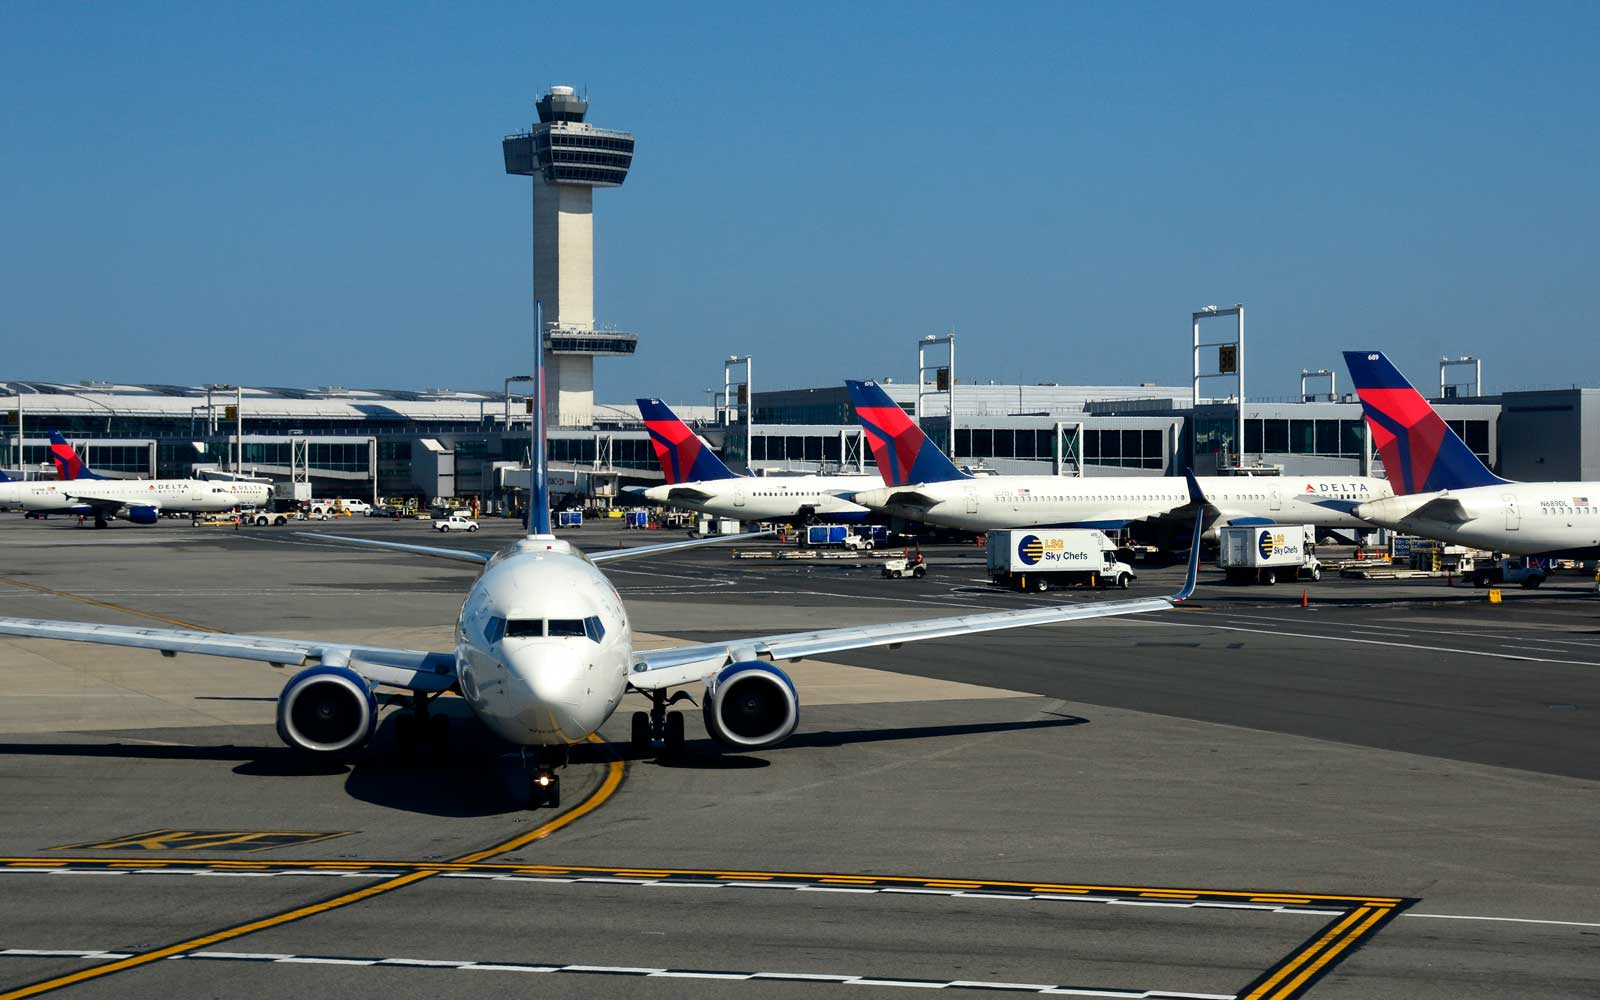 A Delta Airlines passenger jet taxis at John F. Kennedy International Airport in New York, New York,